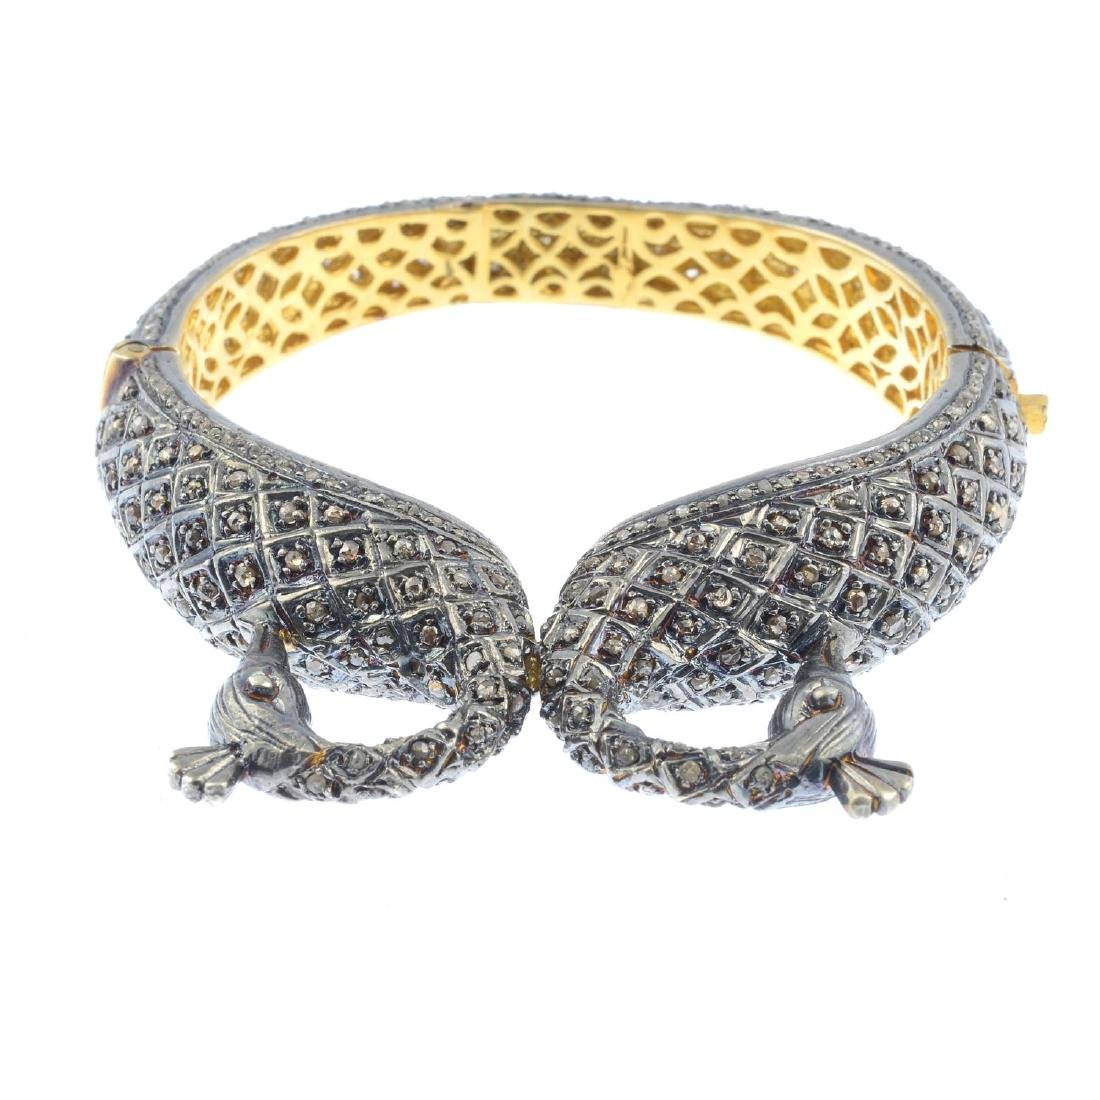 (205872) A diamond hinged bangle. Designed as two